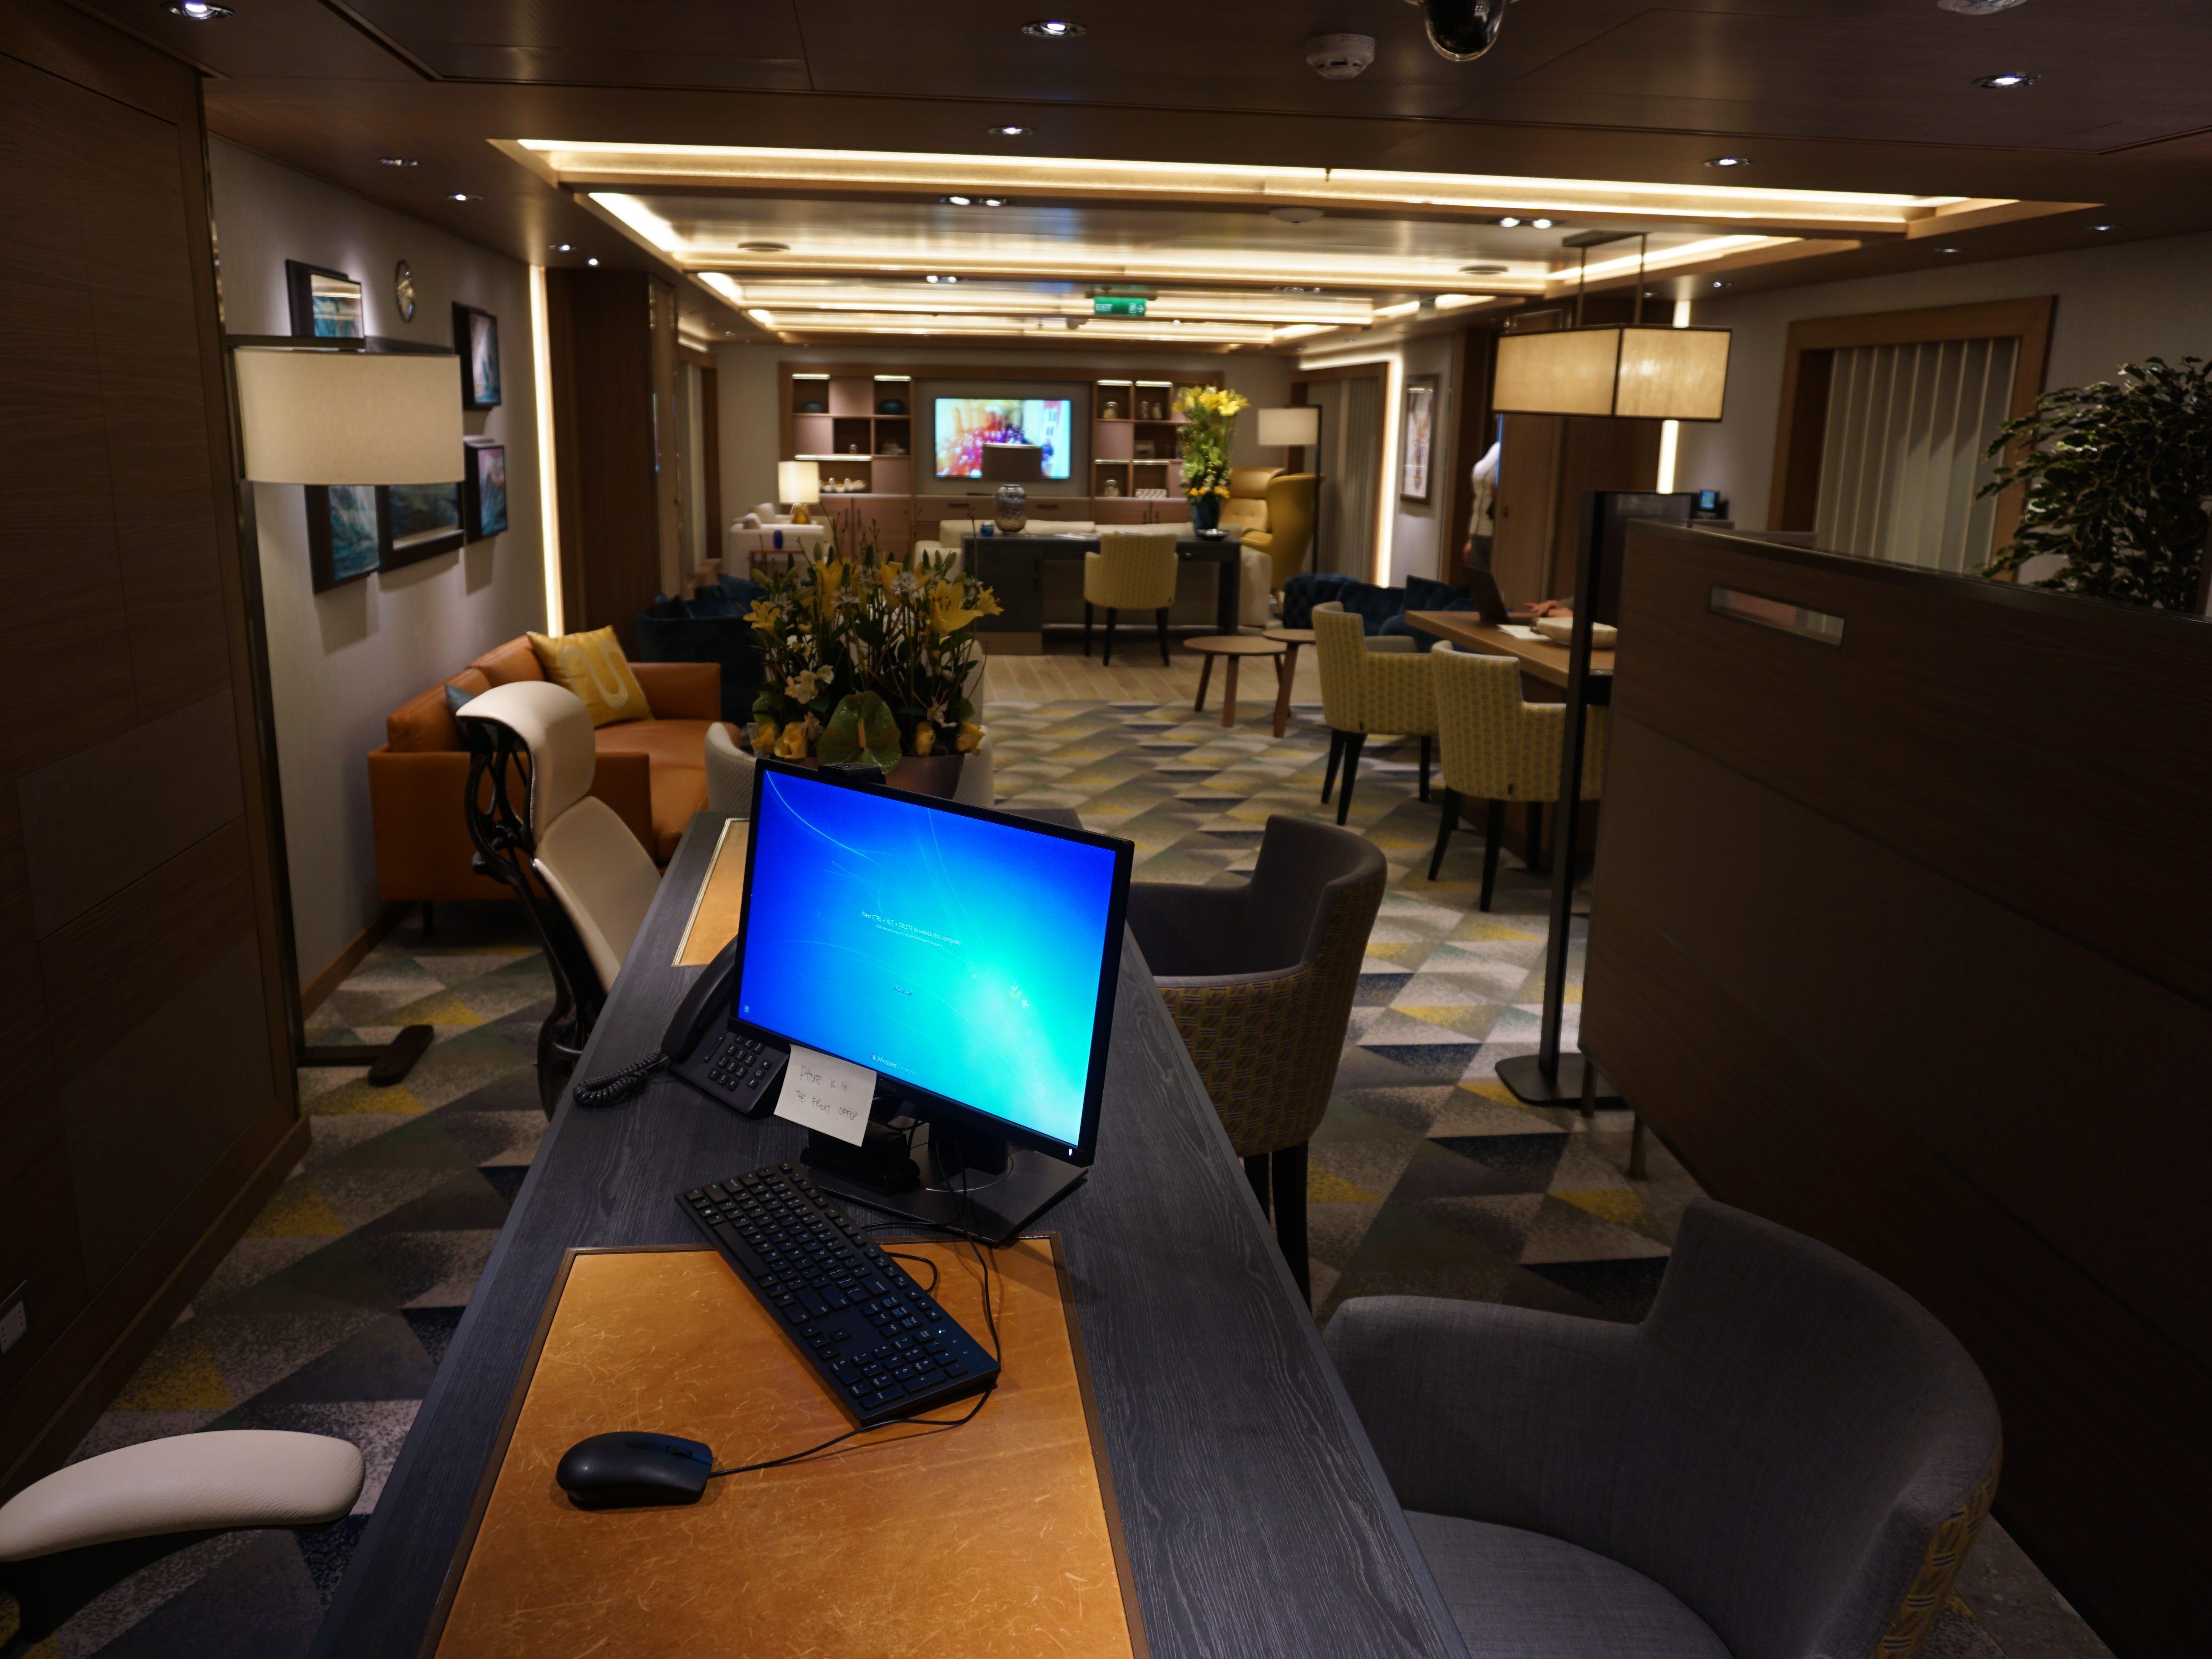 On Deck 7, adjacent to the suite accommodations, the Neptune Lounge is a concierge space for guests occupying the ship's top-tier Pinnacle and Neptune suites.